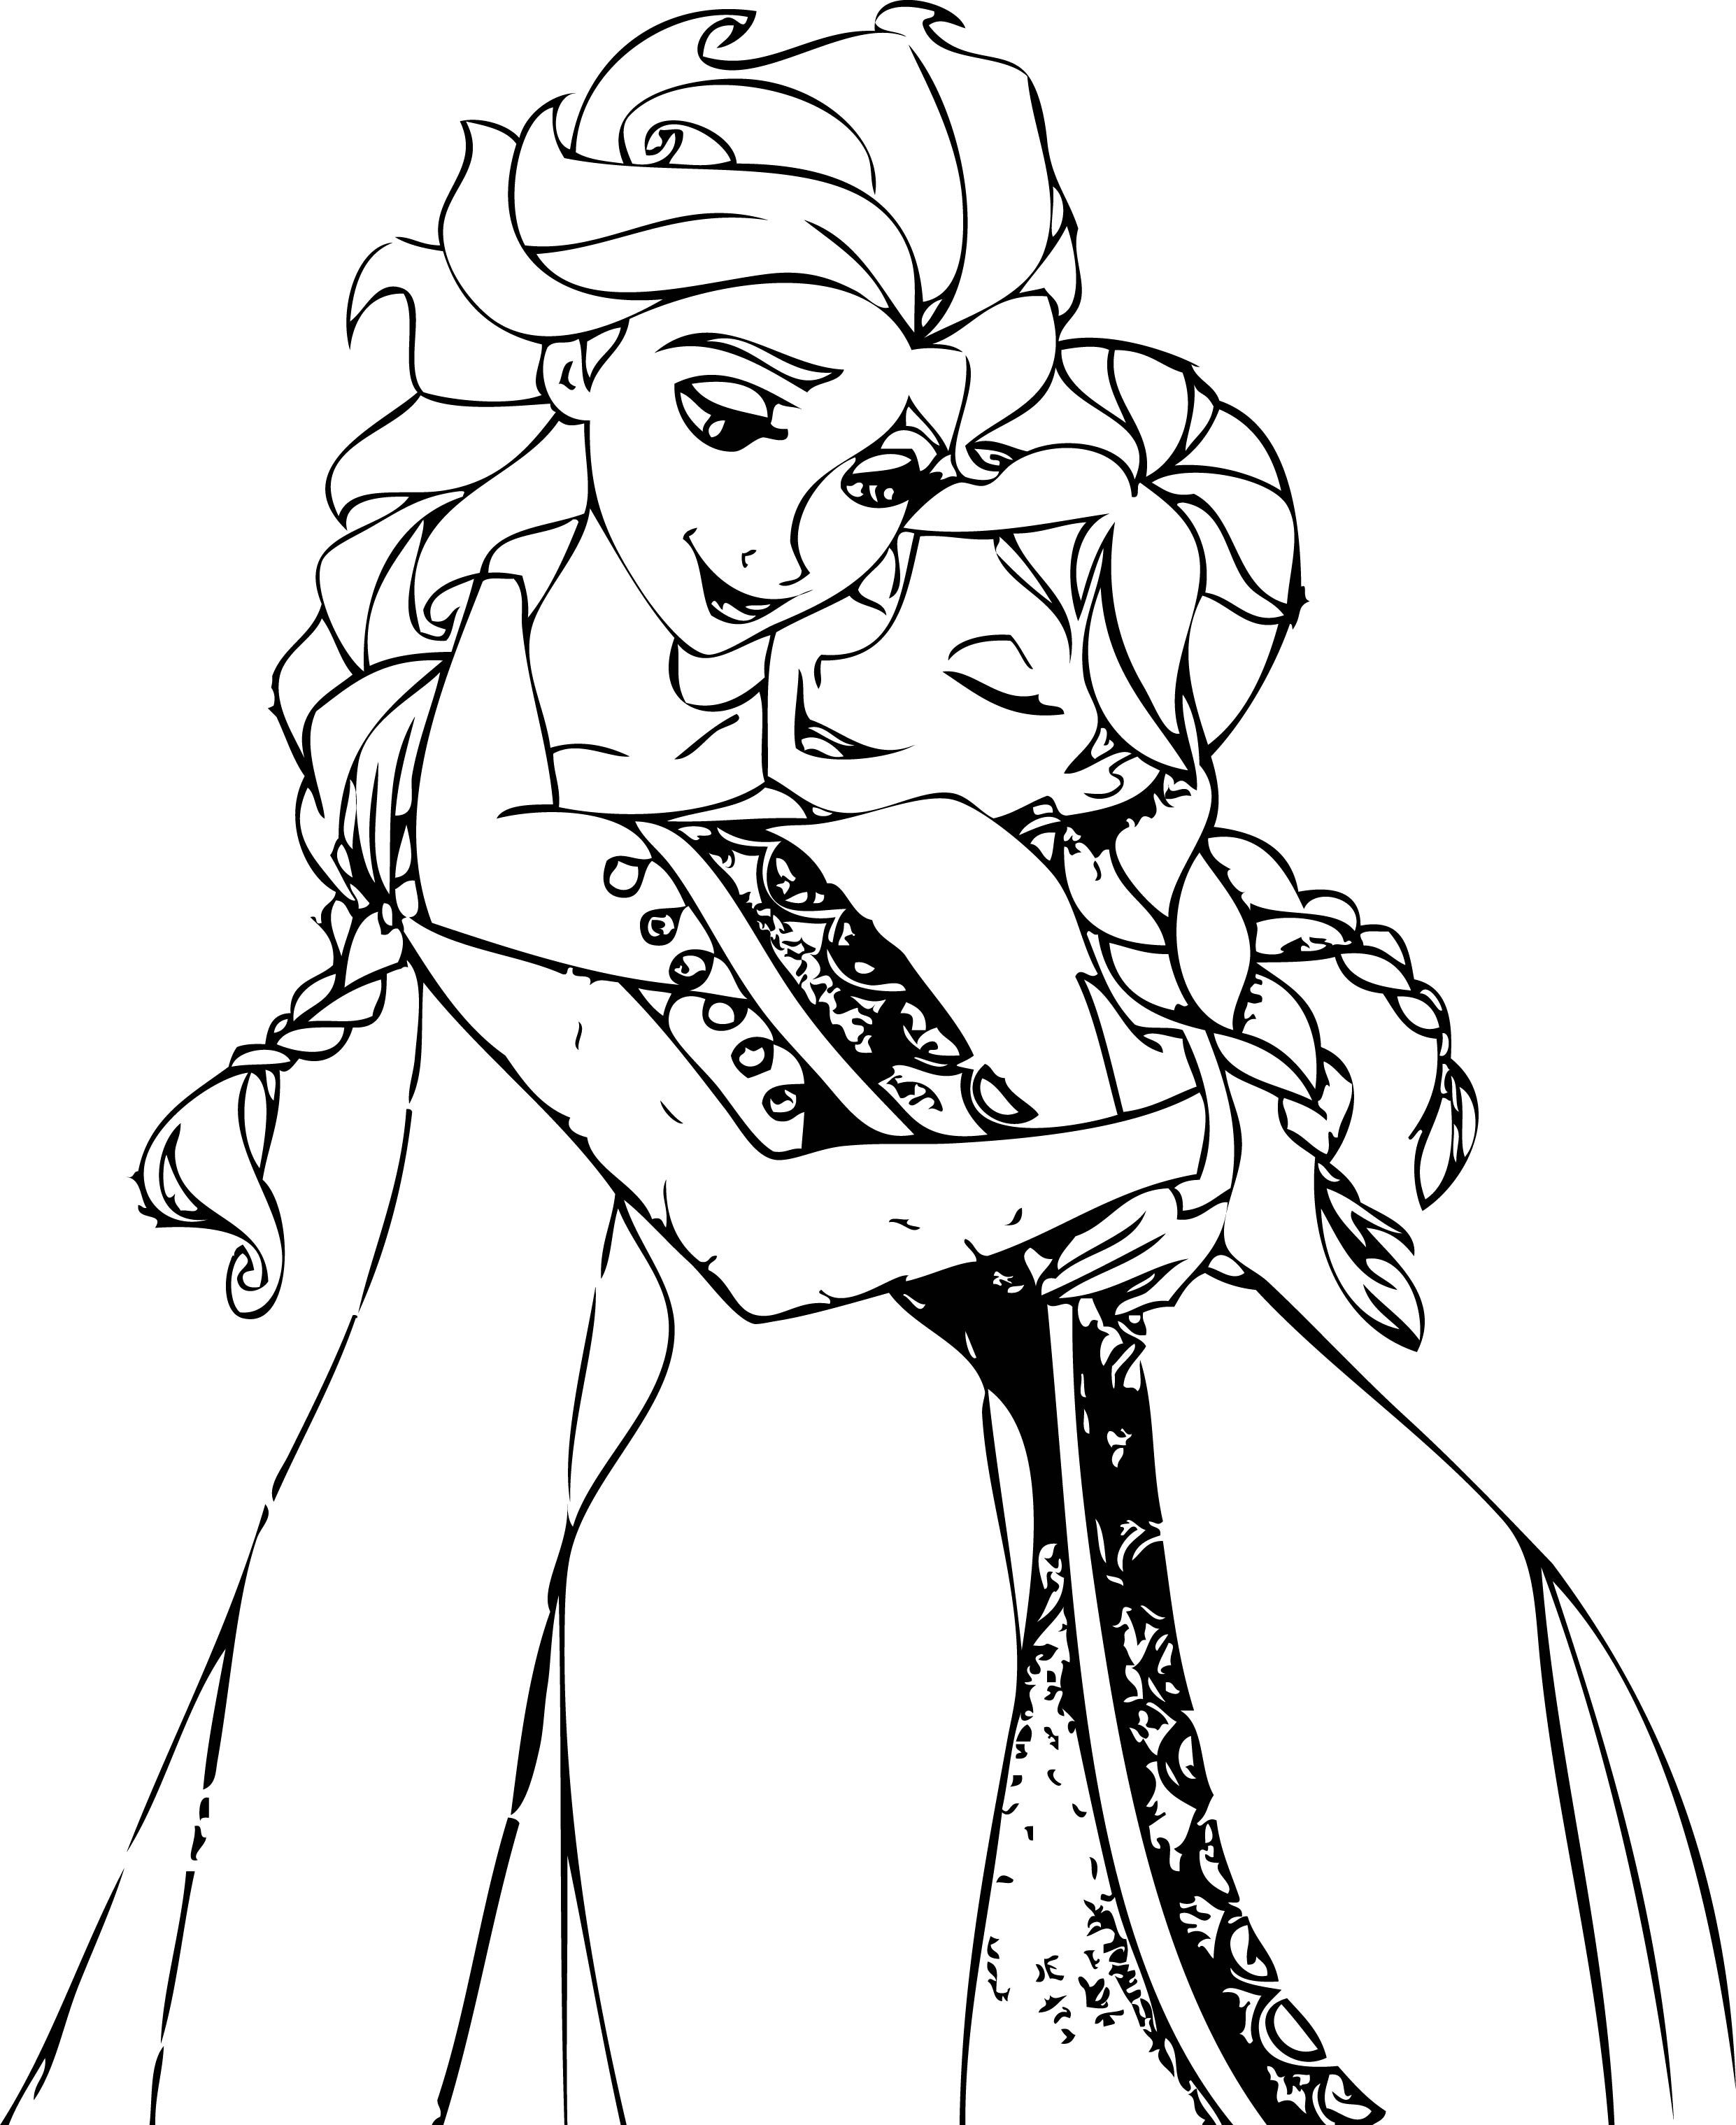 Elsa And Anna Hug Coloring Page Elsa coloring pages